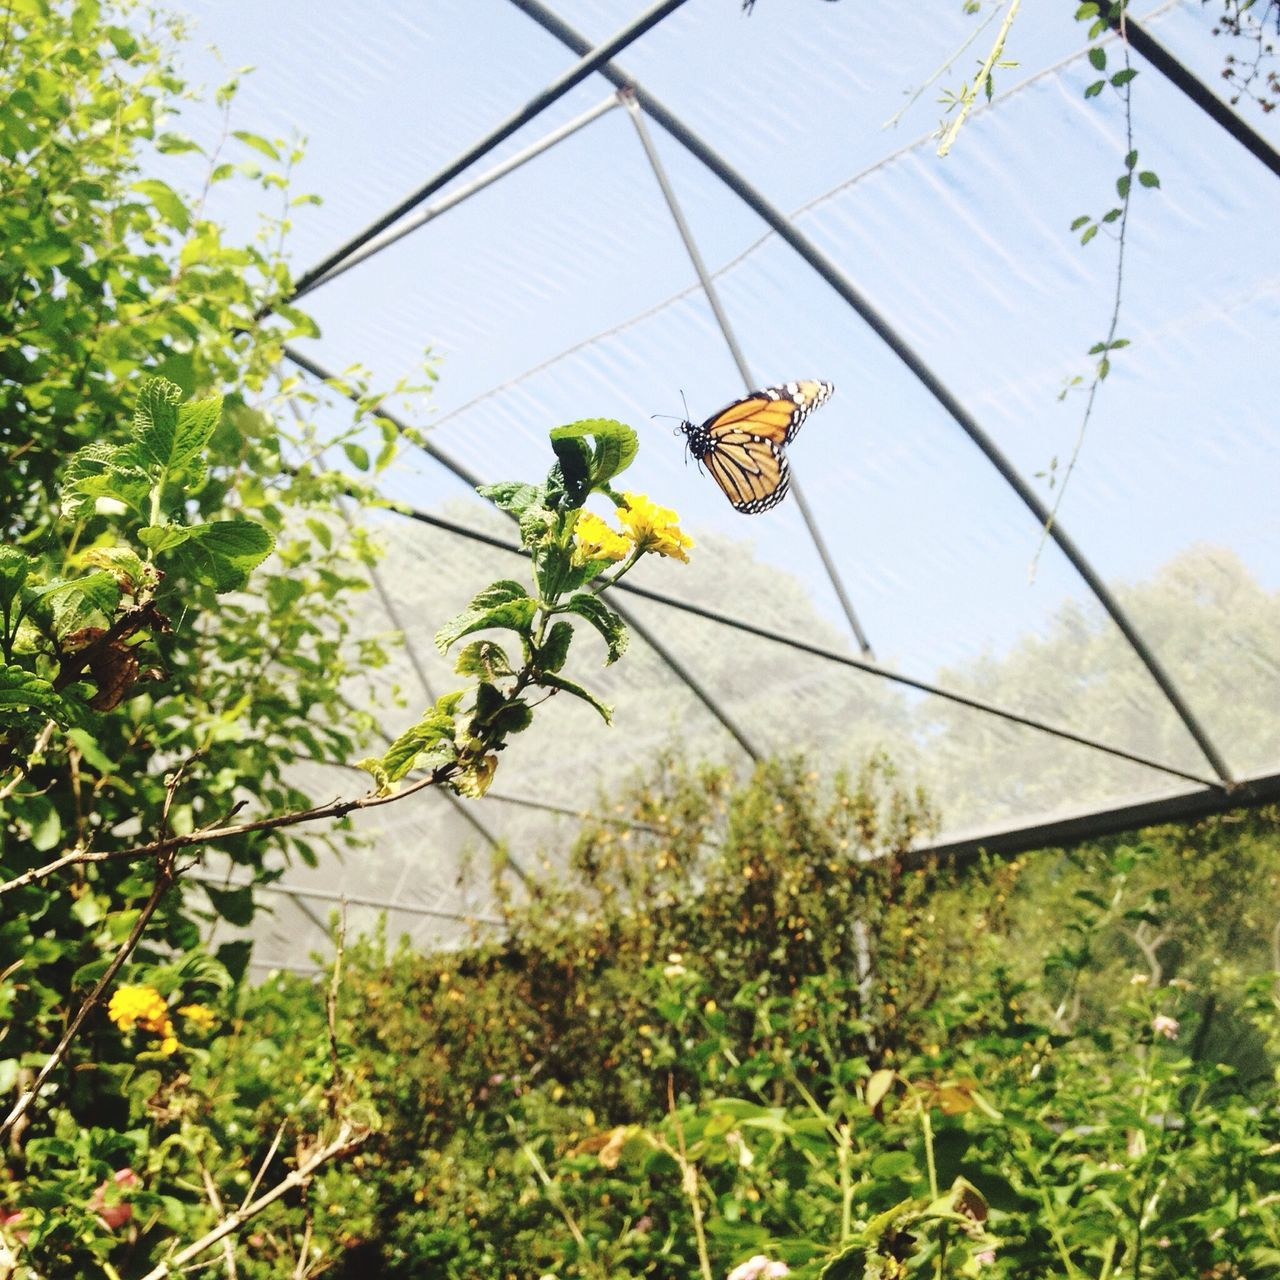 Low Angle View Of Butterfly Over Plants In Greenhouse